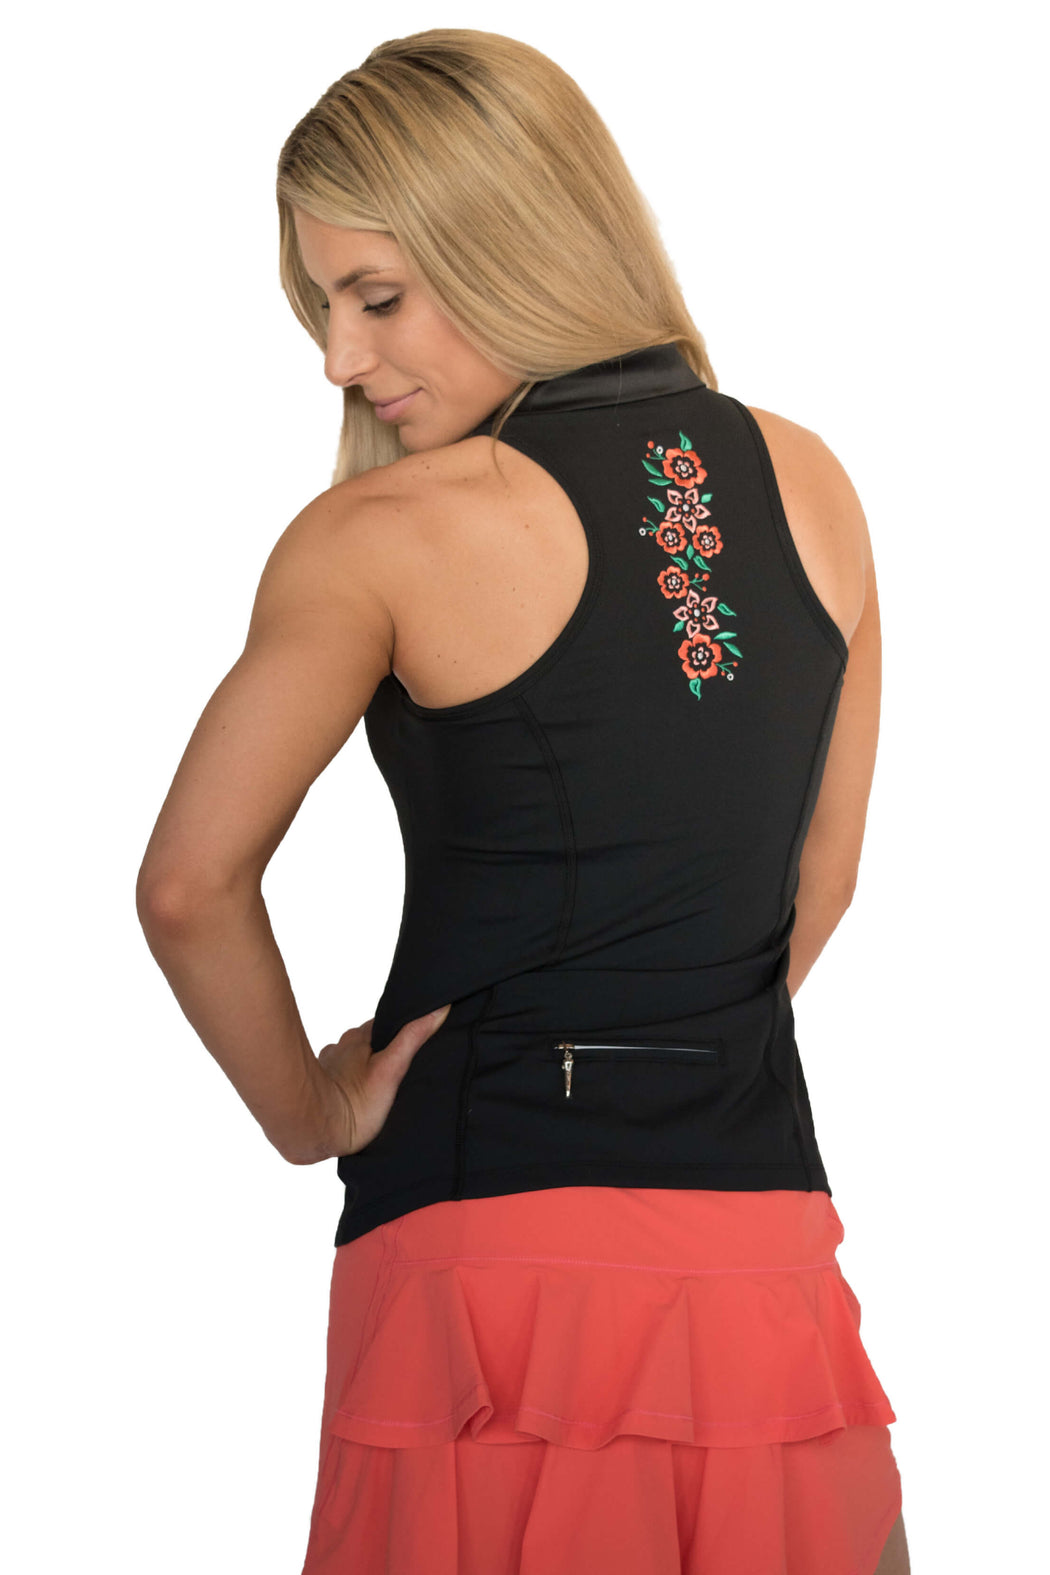 NEW! Limited Edition! Embroidered Racerback Golf Polo - Black